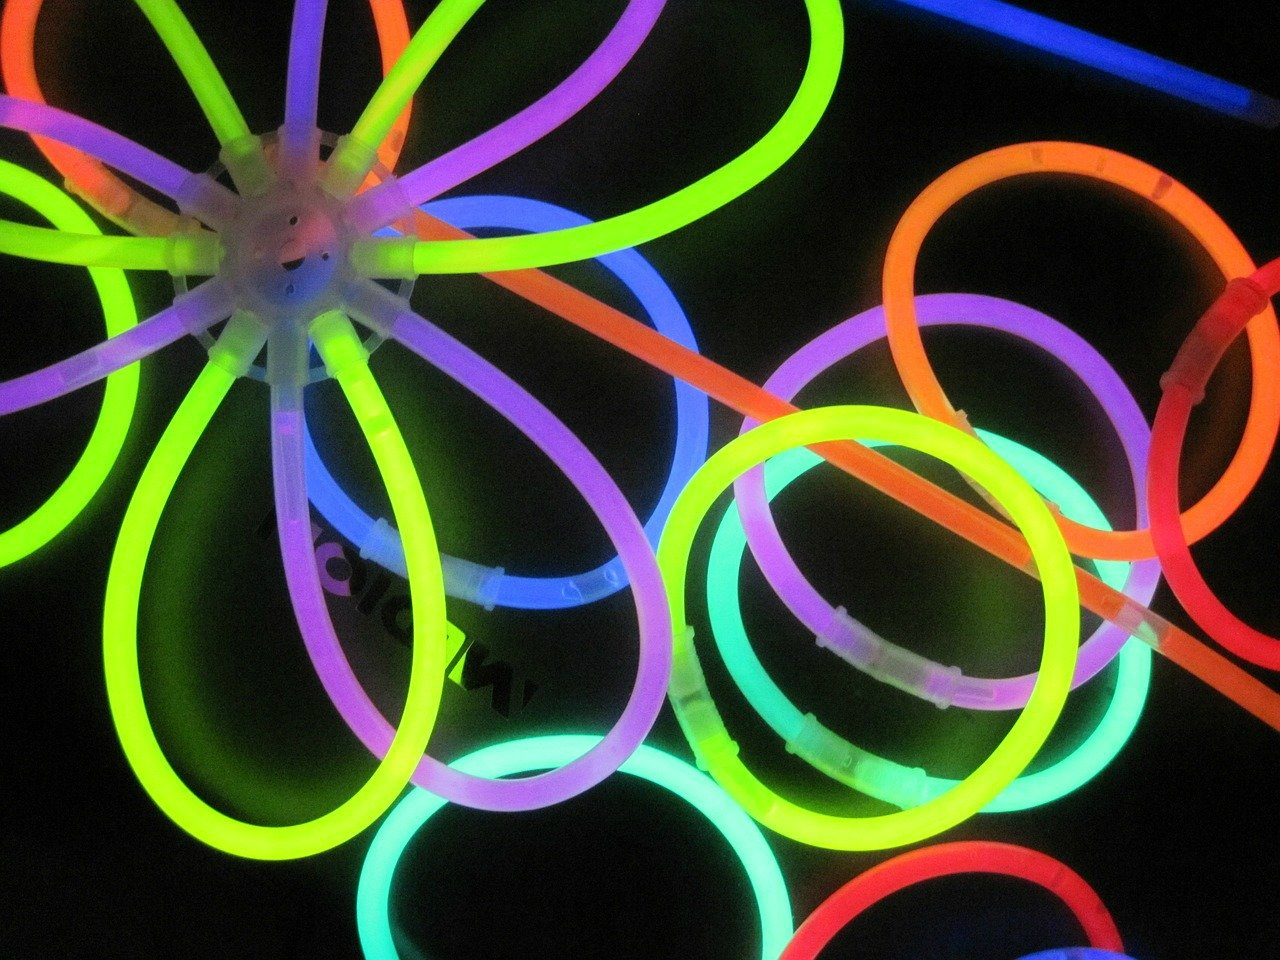 Family Glow Party Ideas